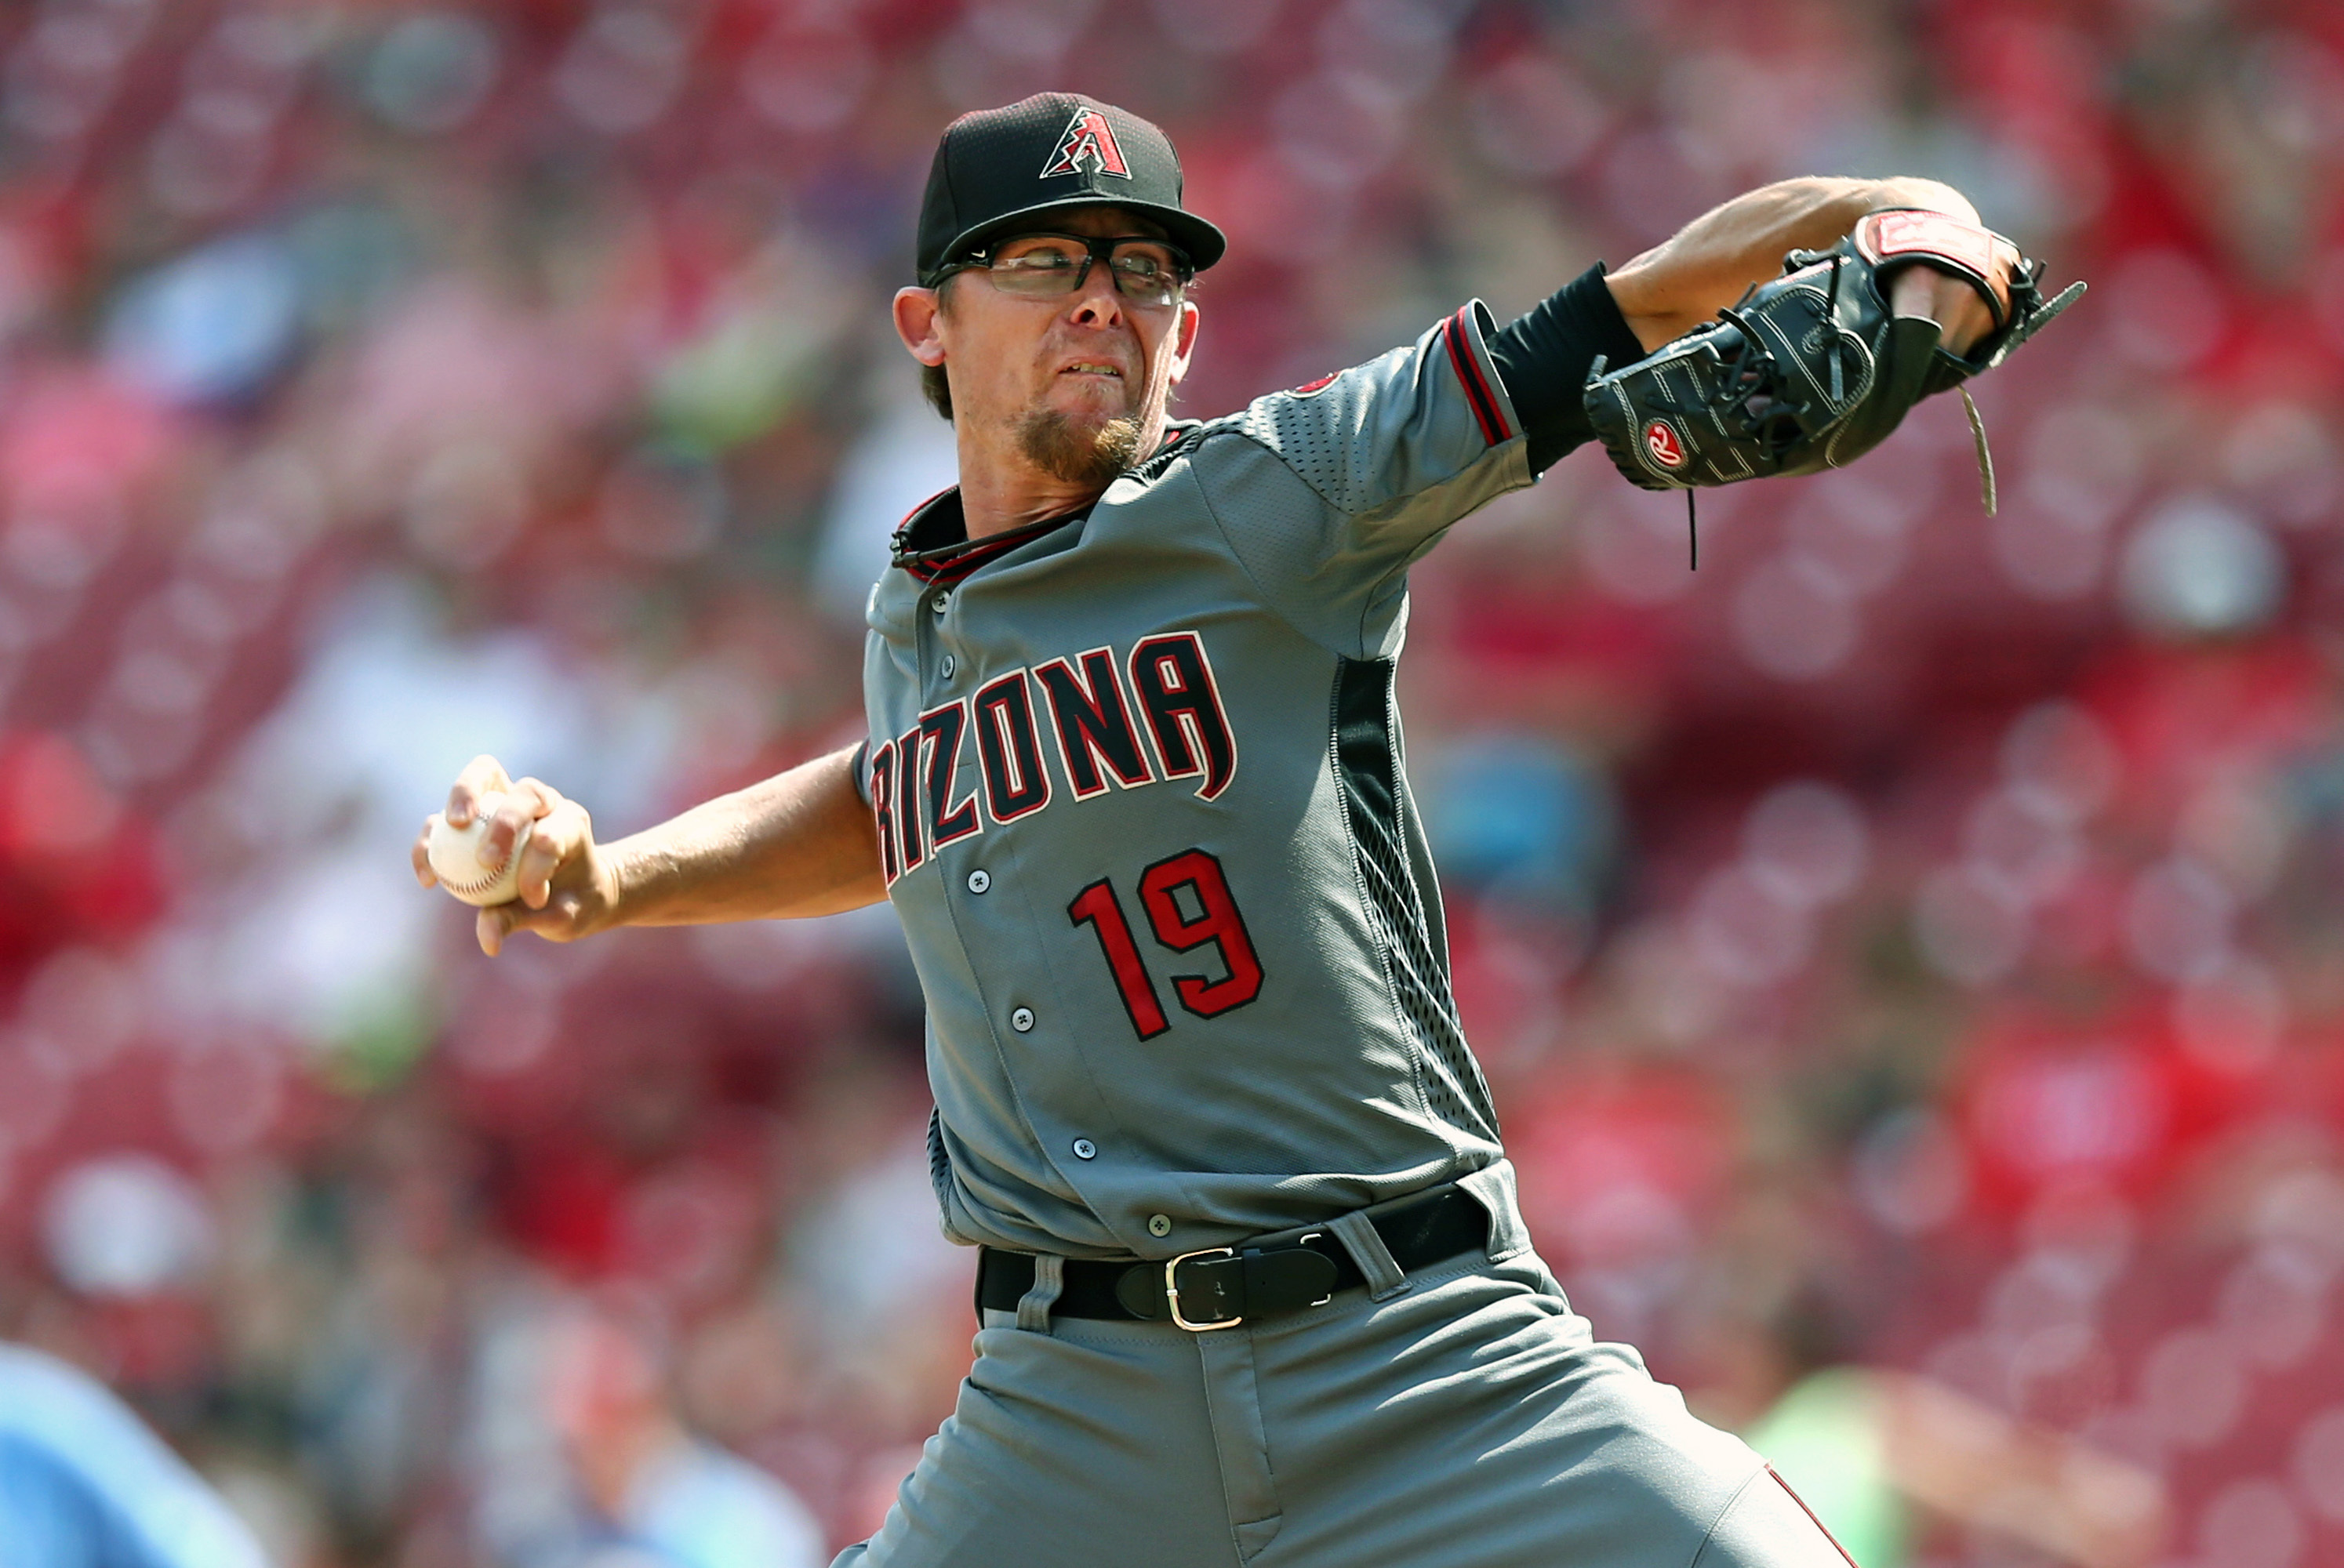 Arizona Diamondbacks relief pitcher Tyler Clippard throws in the ninth inning of a baseball game against the Cincinnati Reds, Sunday, July 24, 2016, in Cincinnati. (AP Photo/Aaron Doster)